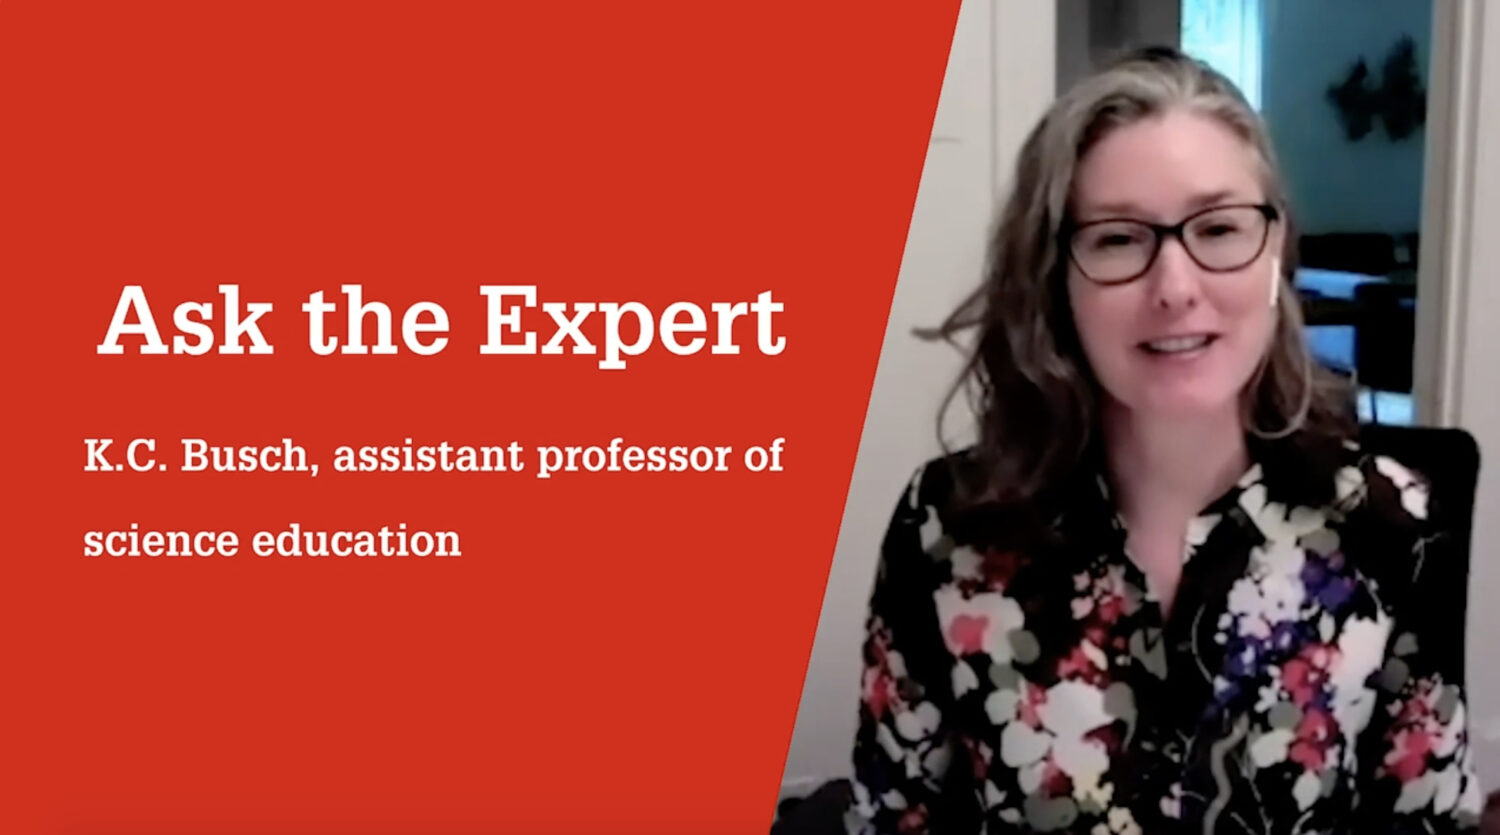 NC State College of Education Assistant Professor K.C. Busch